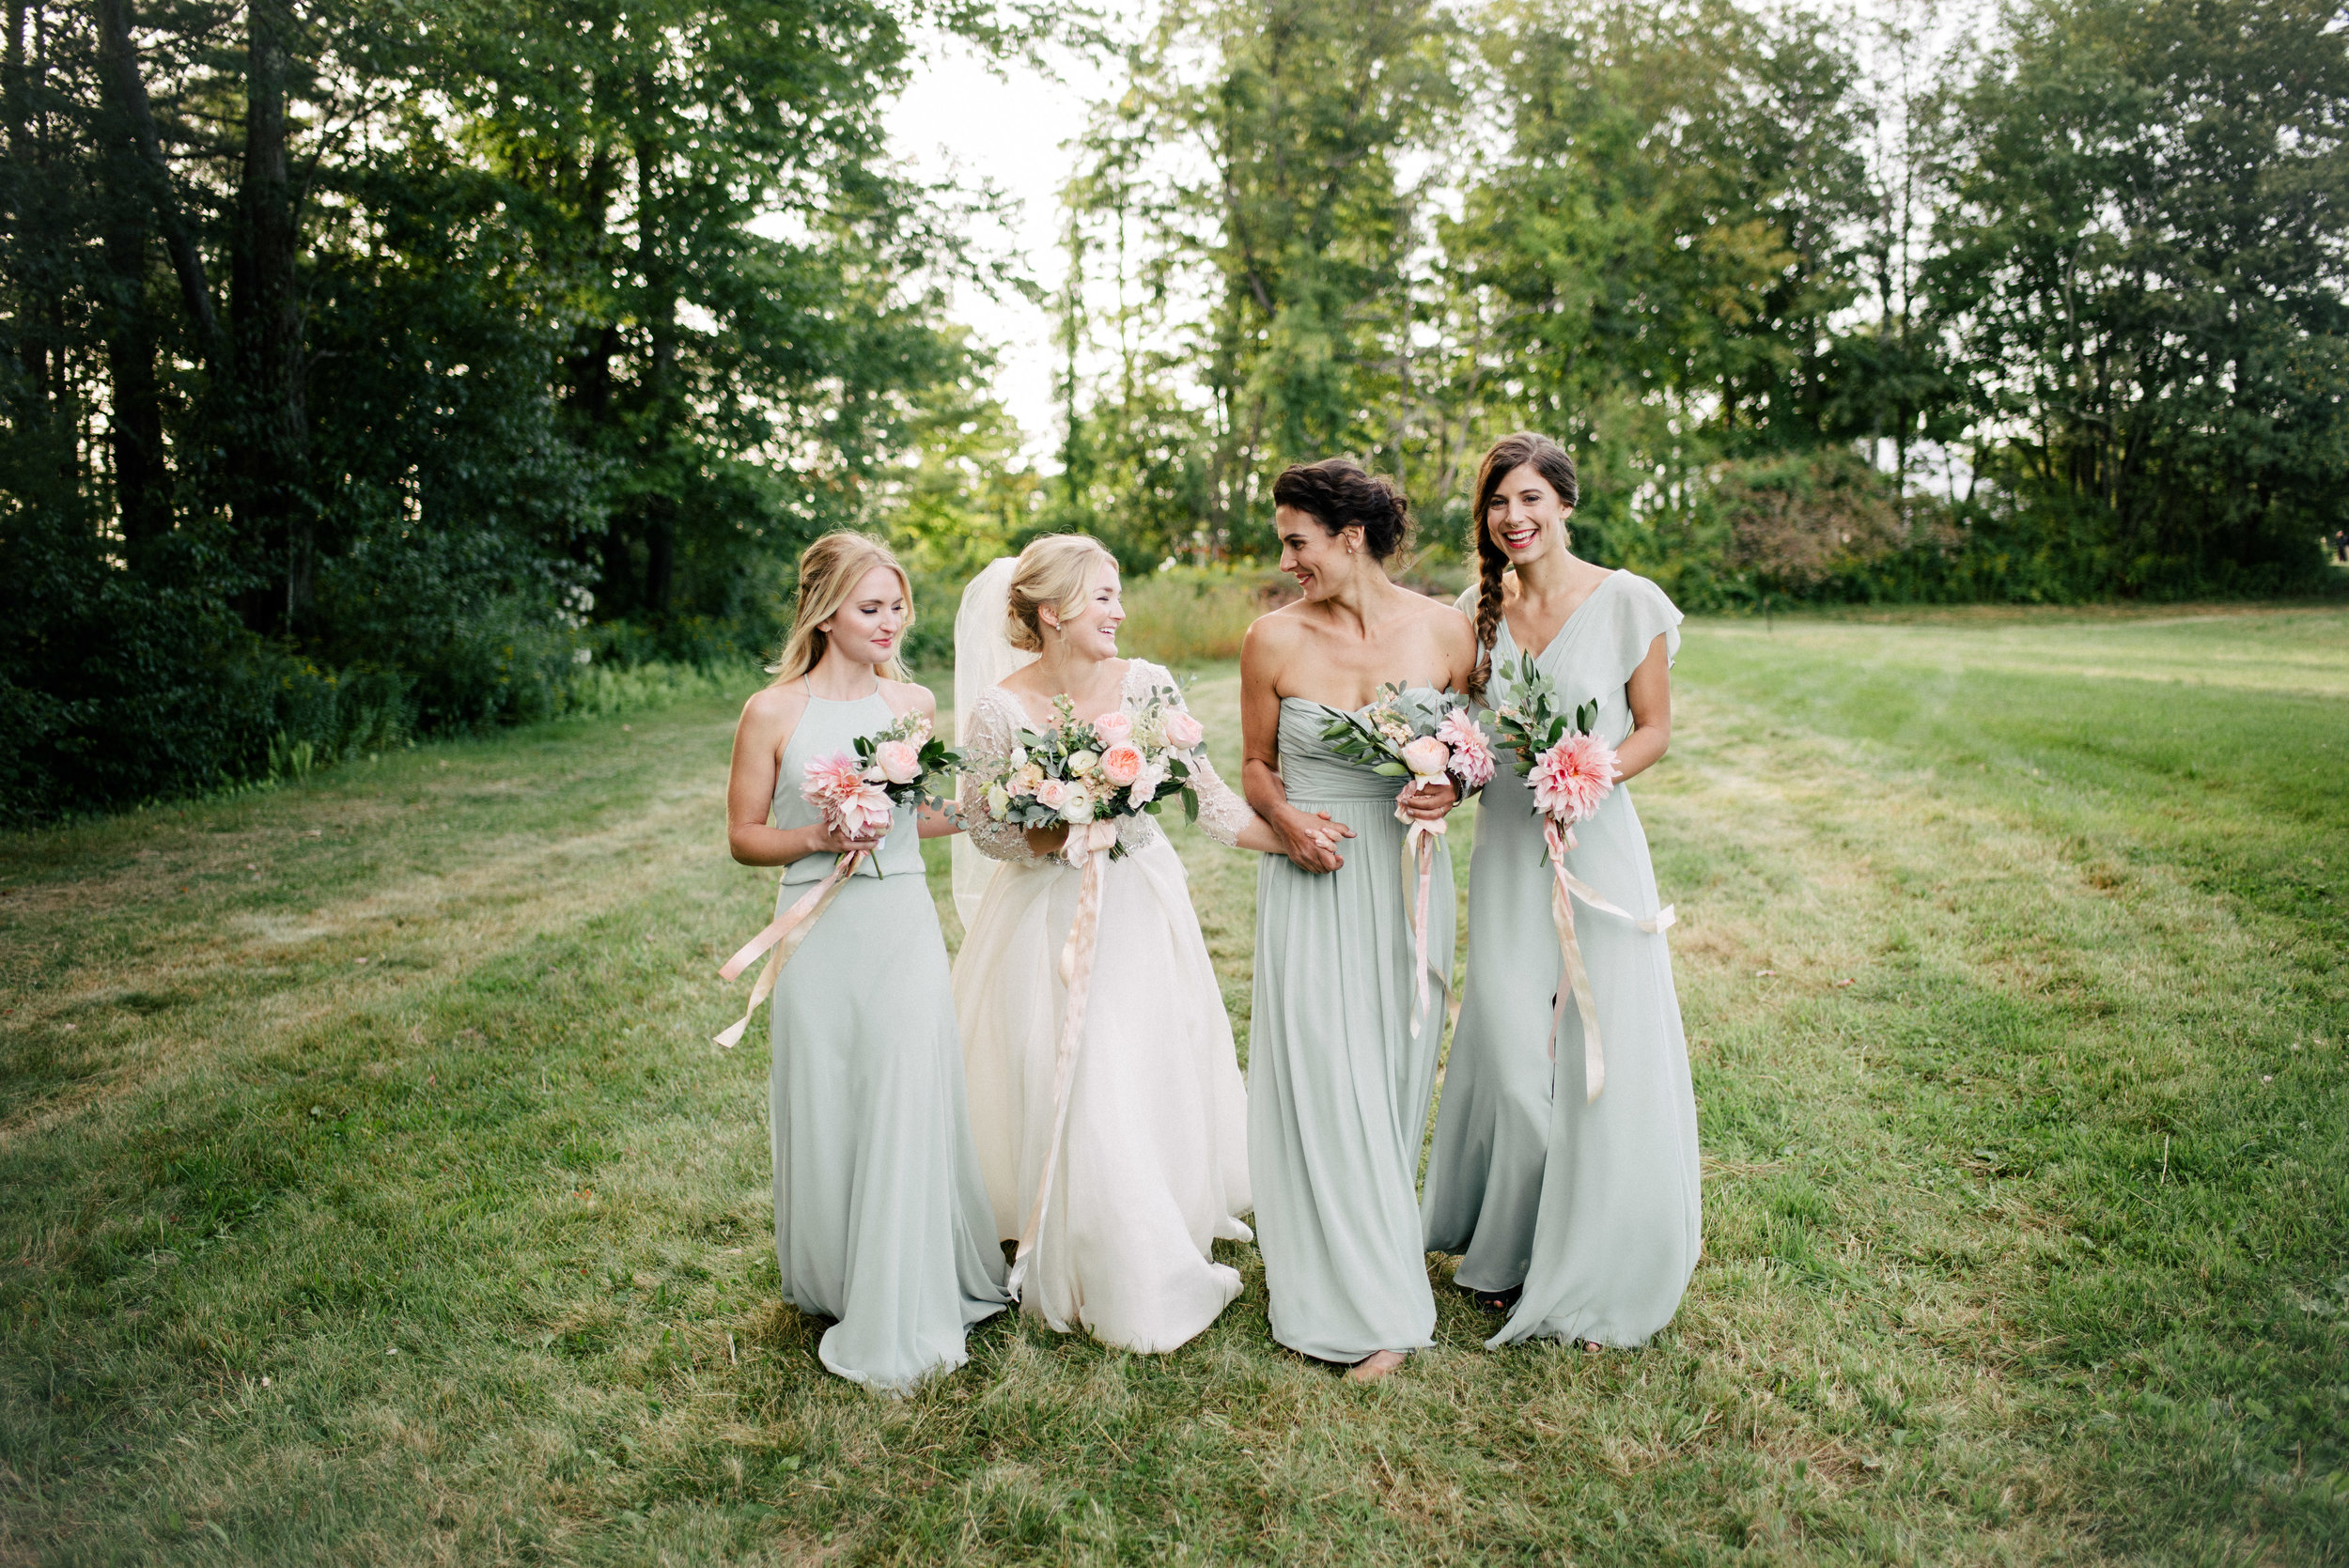 Watershed-Floral-Rest-&-Be-Thankful-Farm-Maine-Wedding_59-5.jpg